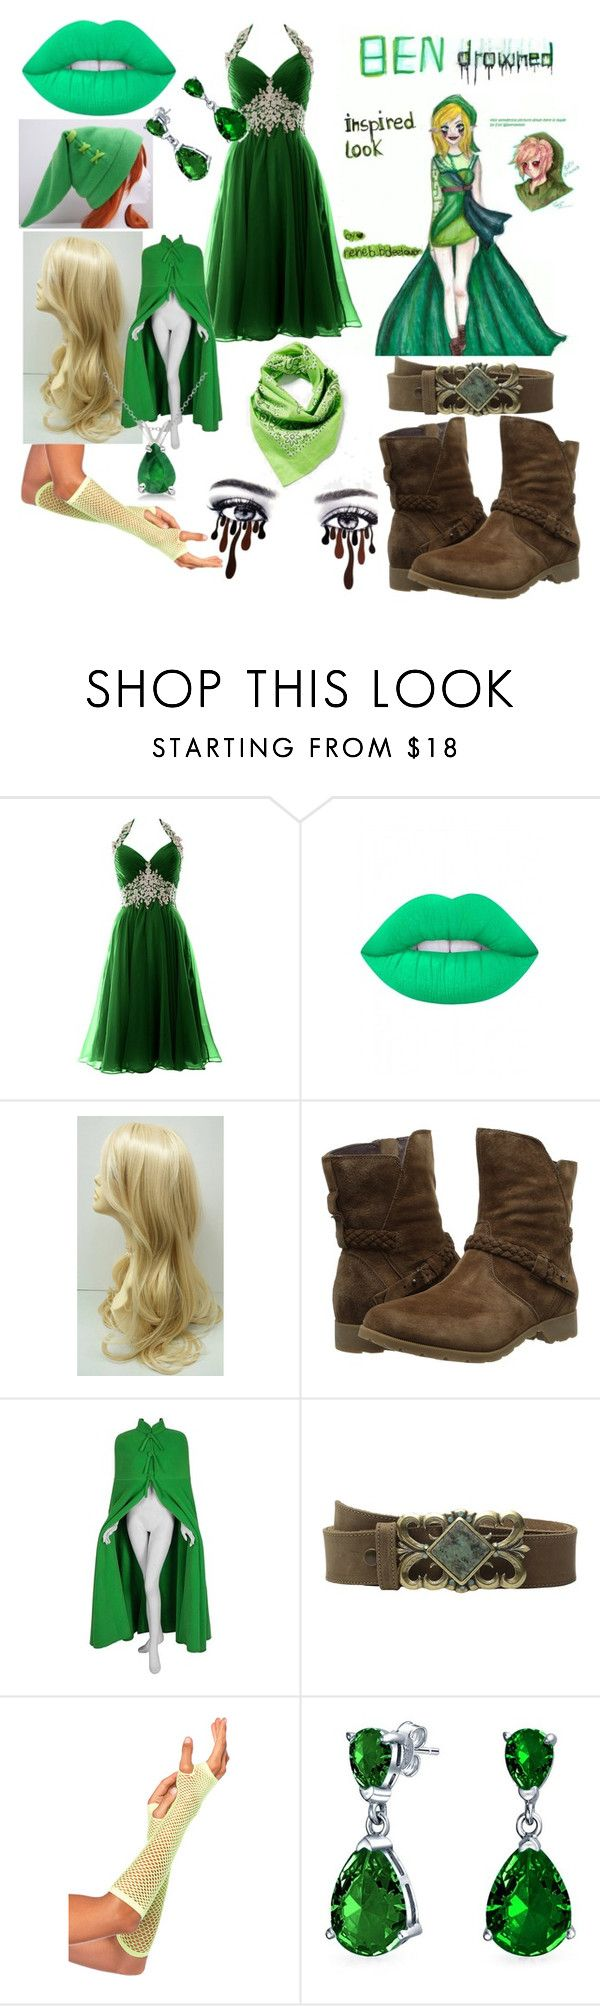 """BEN drowned"" by carmen-41-navarro ❤ liked on Polyvore featuring Lime Crime, Teva, Leatherock, Bling Jewelry and Allurez"